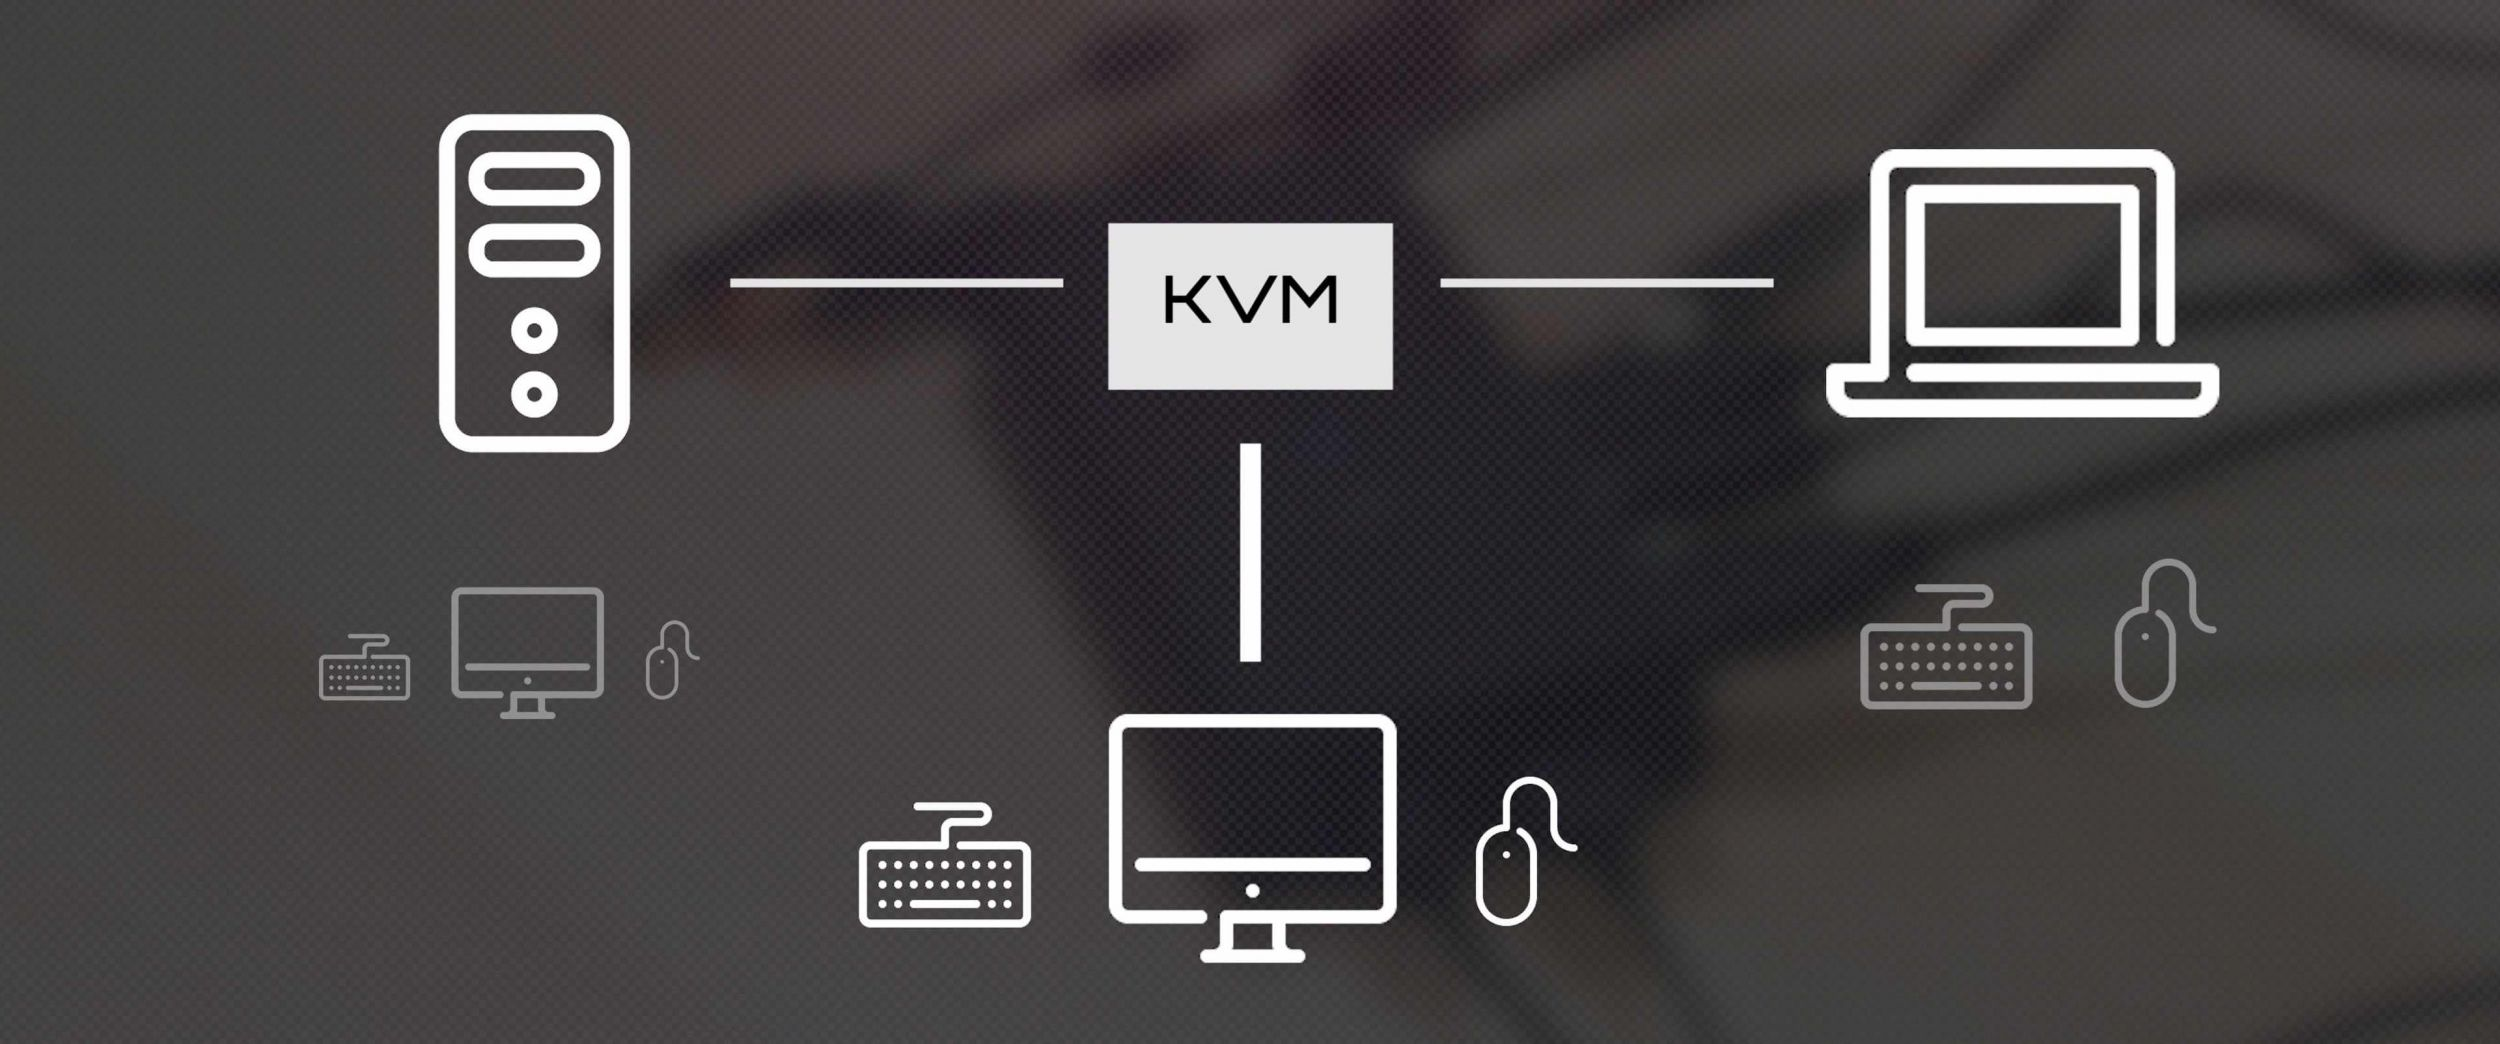 How KVM work flow image